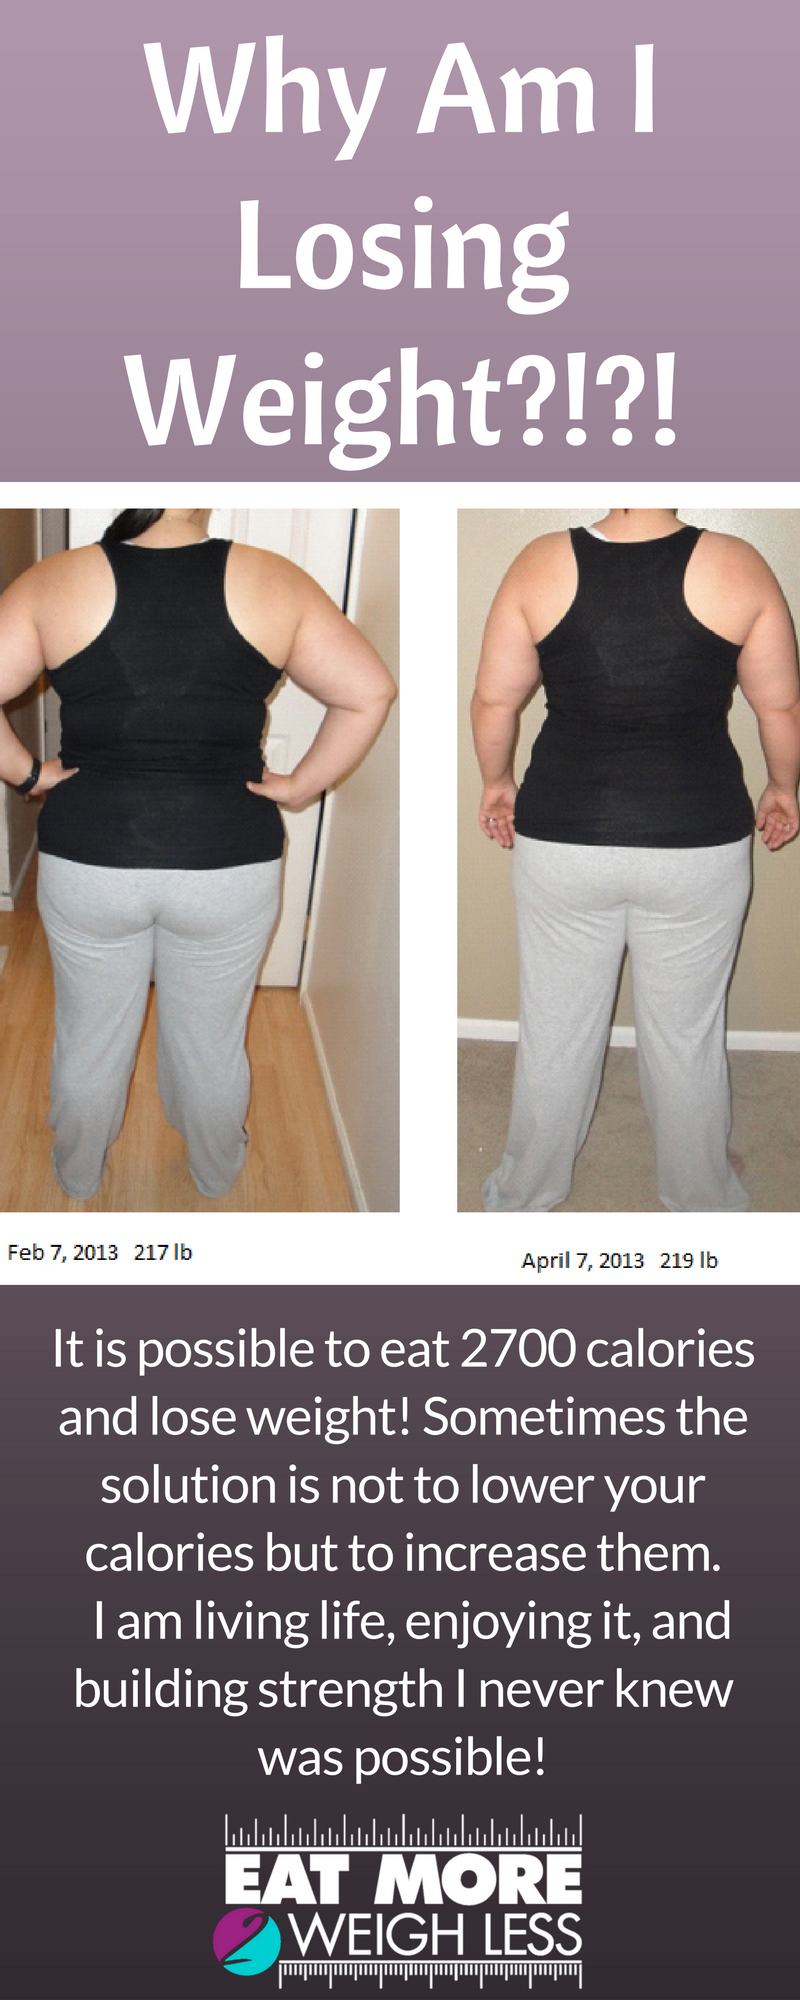 Edmark shake off weight loss photo 10